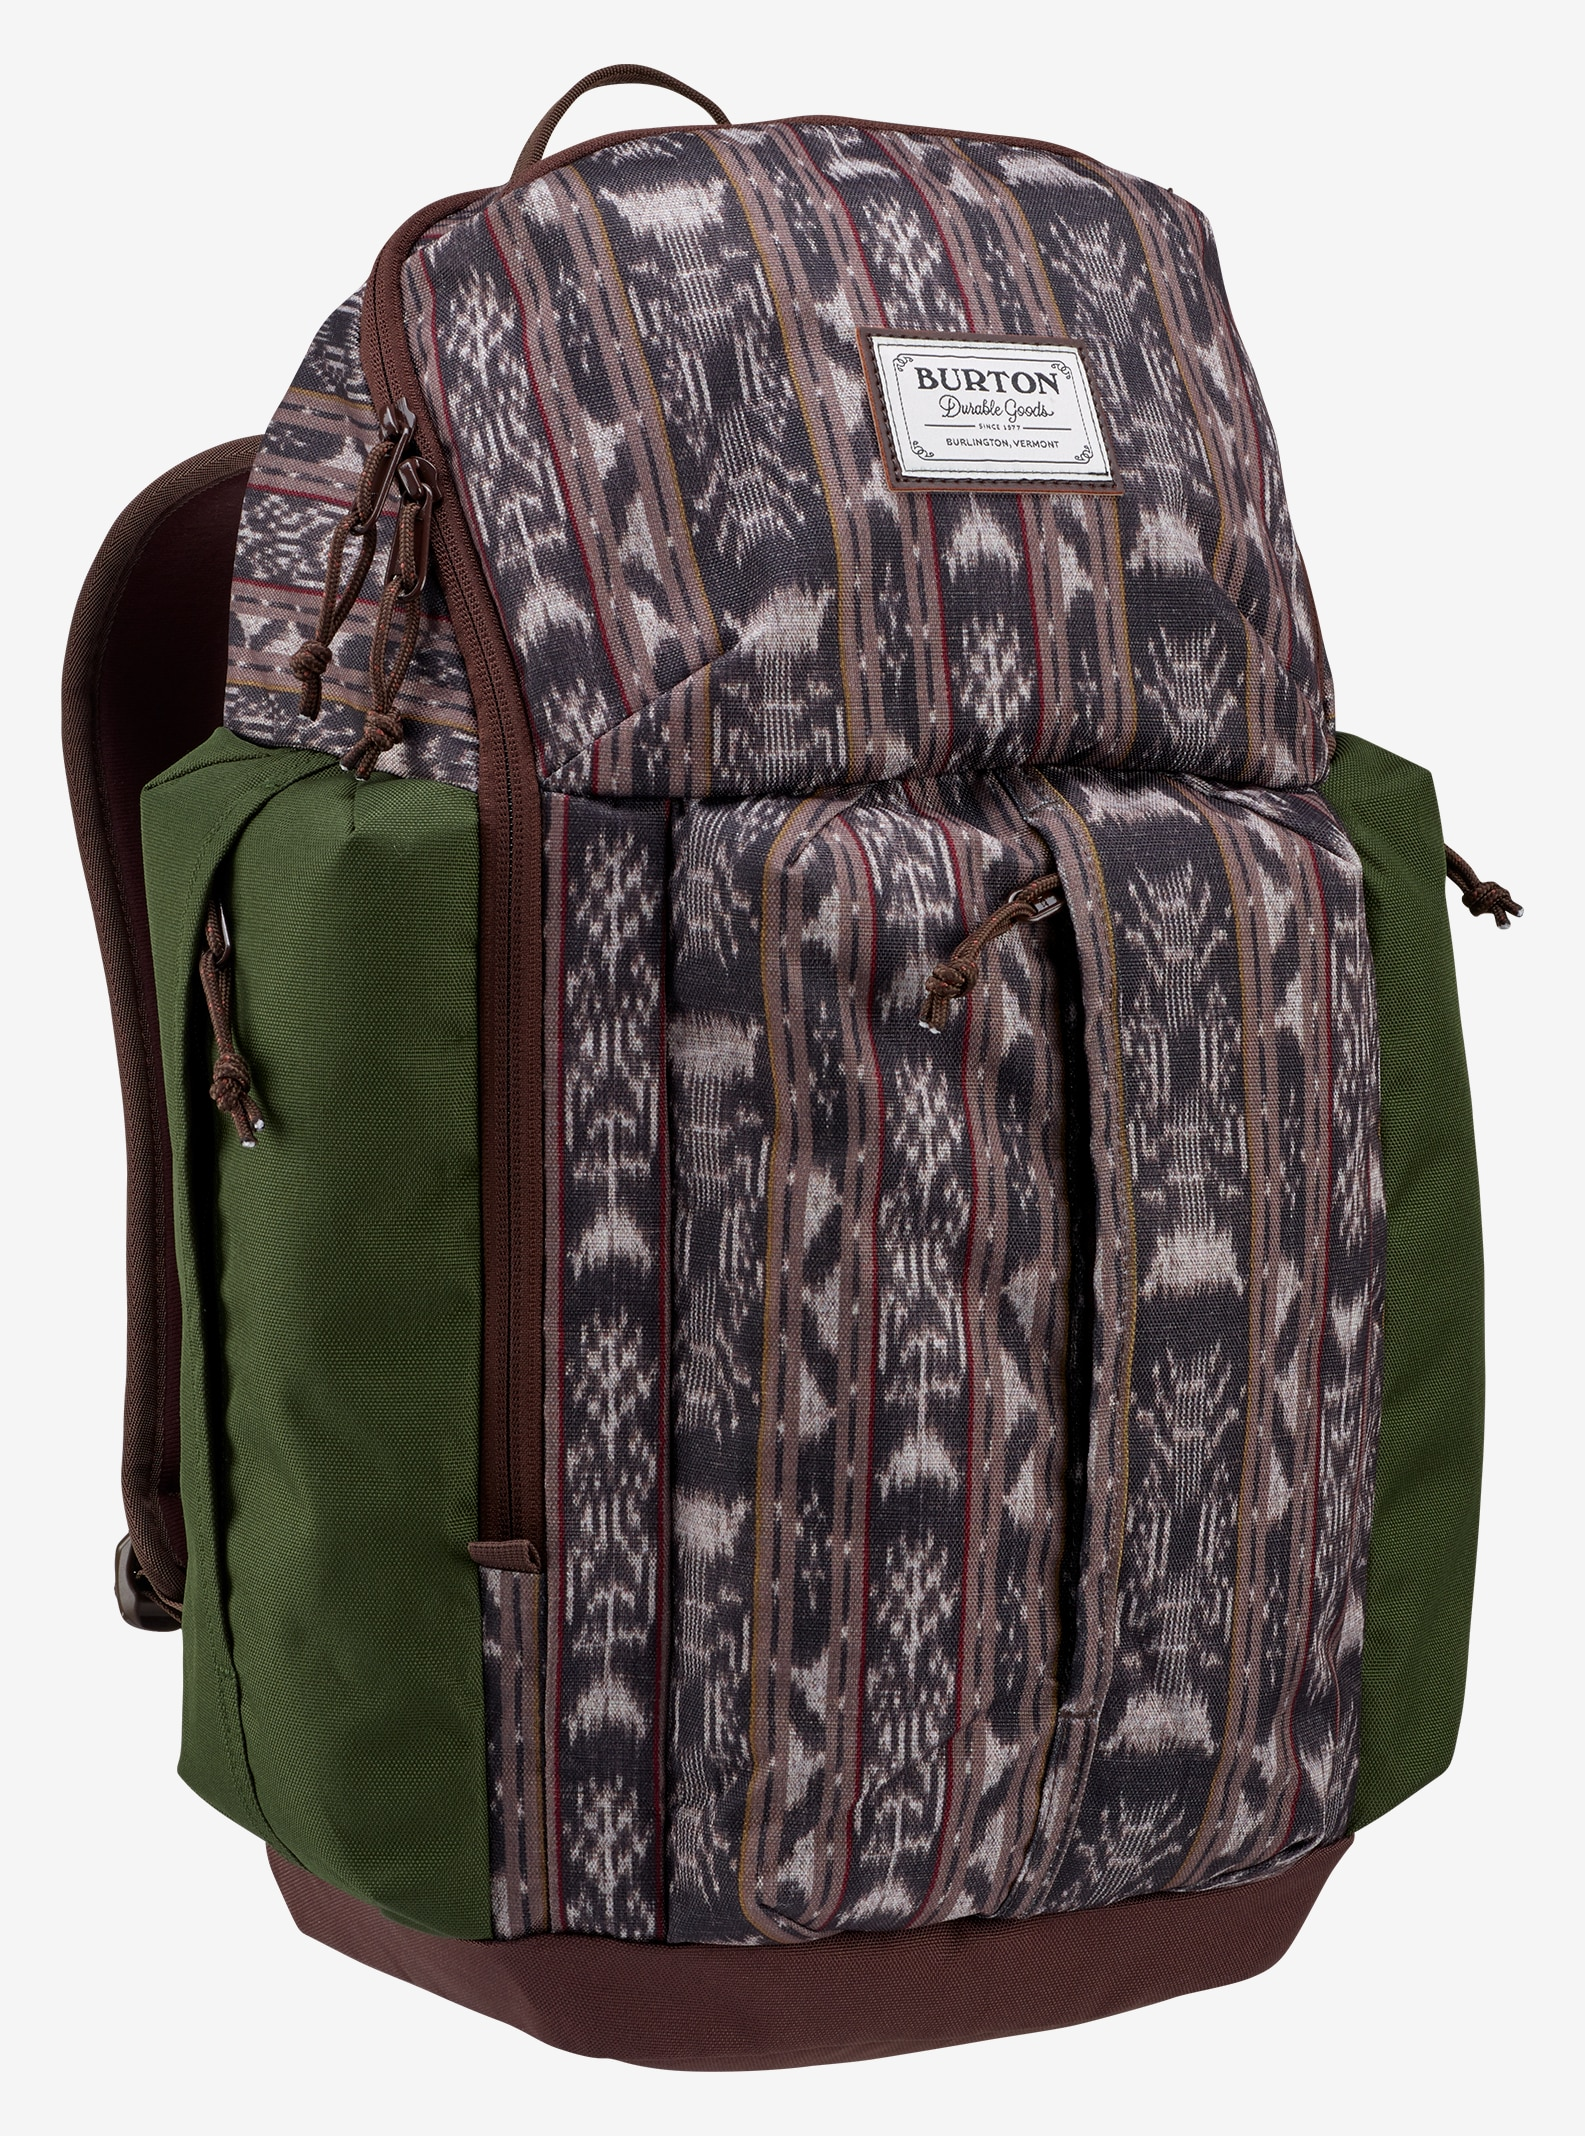 Burton Cadet Backpack shown in Guatikat Print